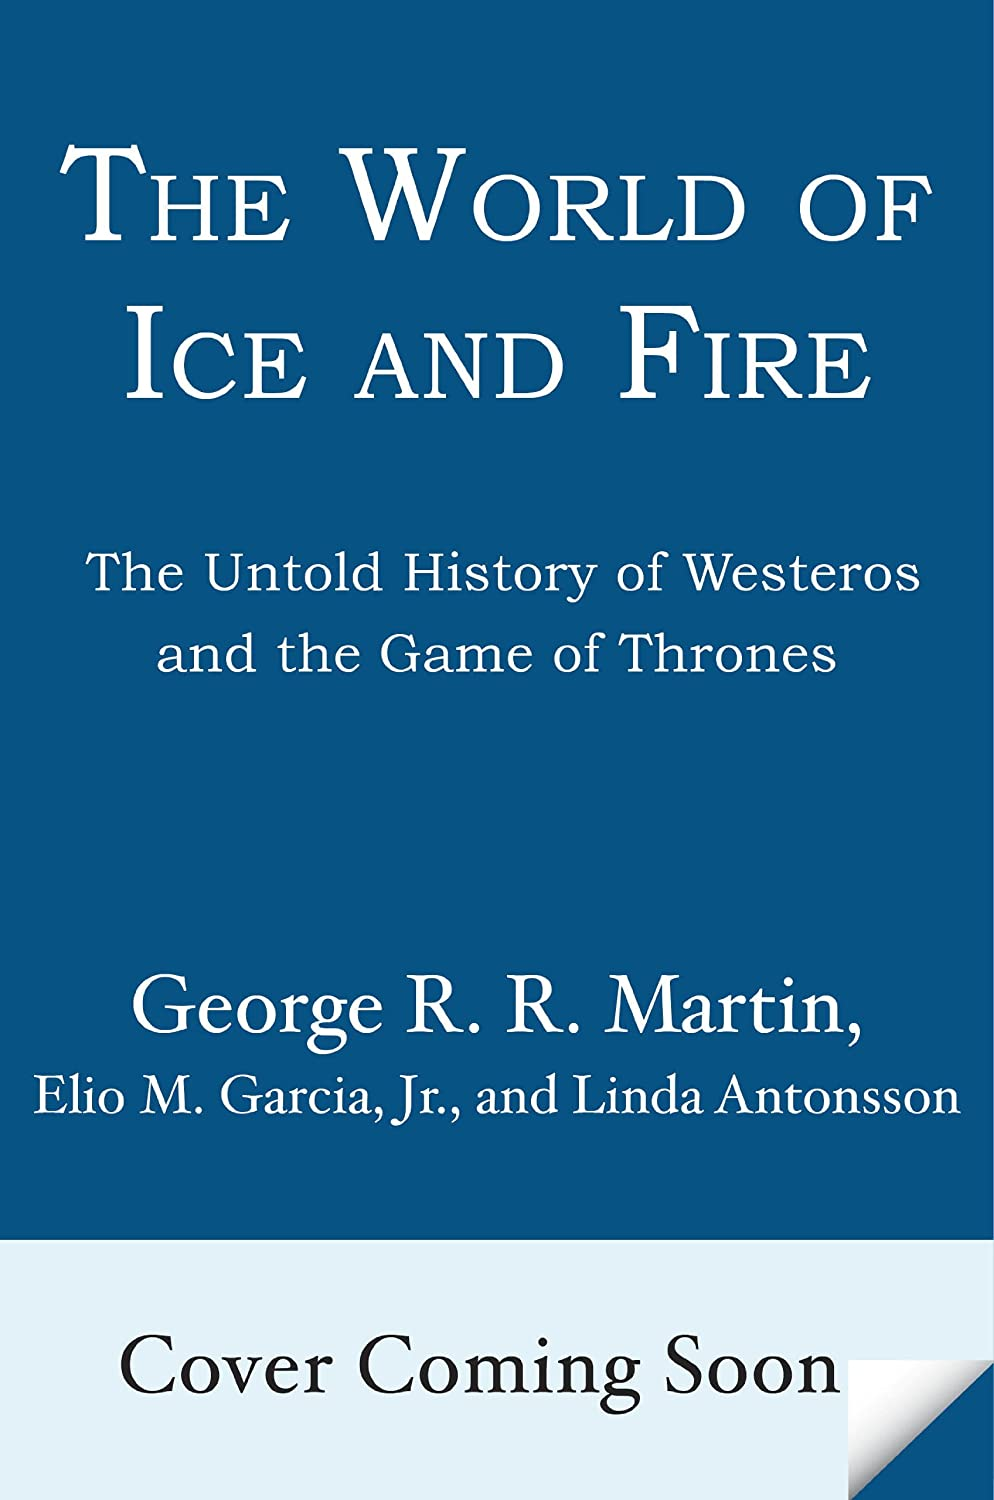 Excerpt and Dragon! George R.R. Martin's The World of Ice and Fire